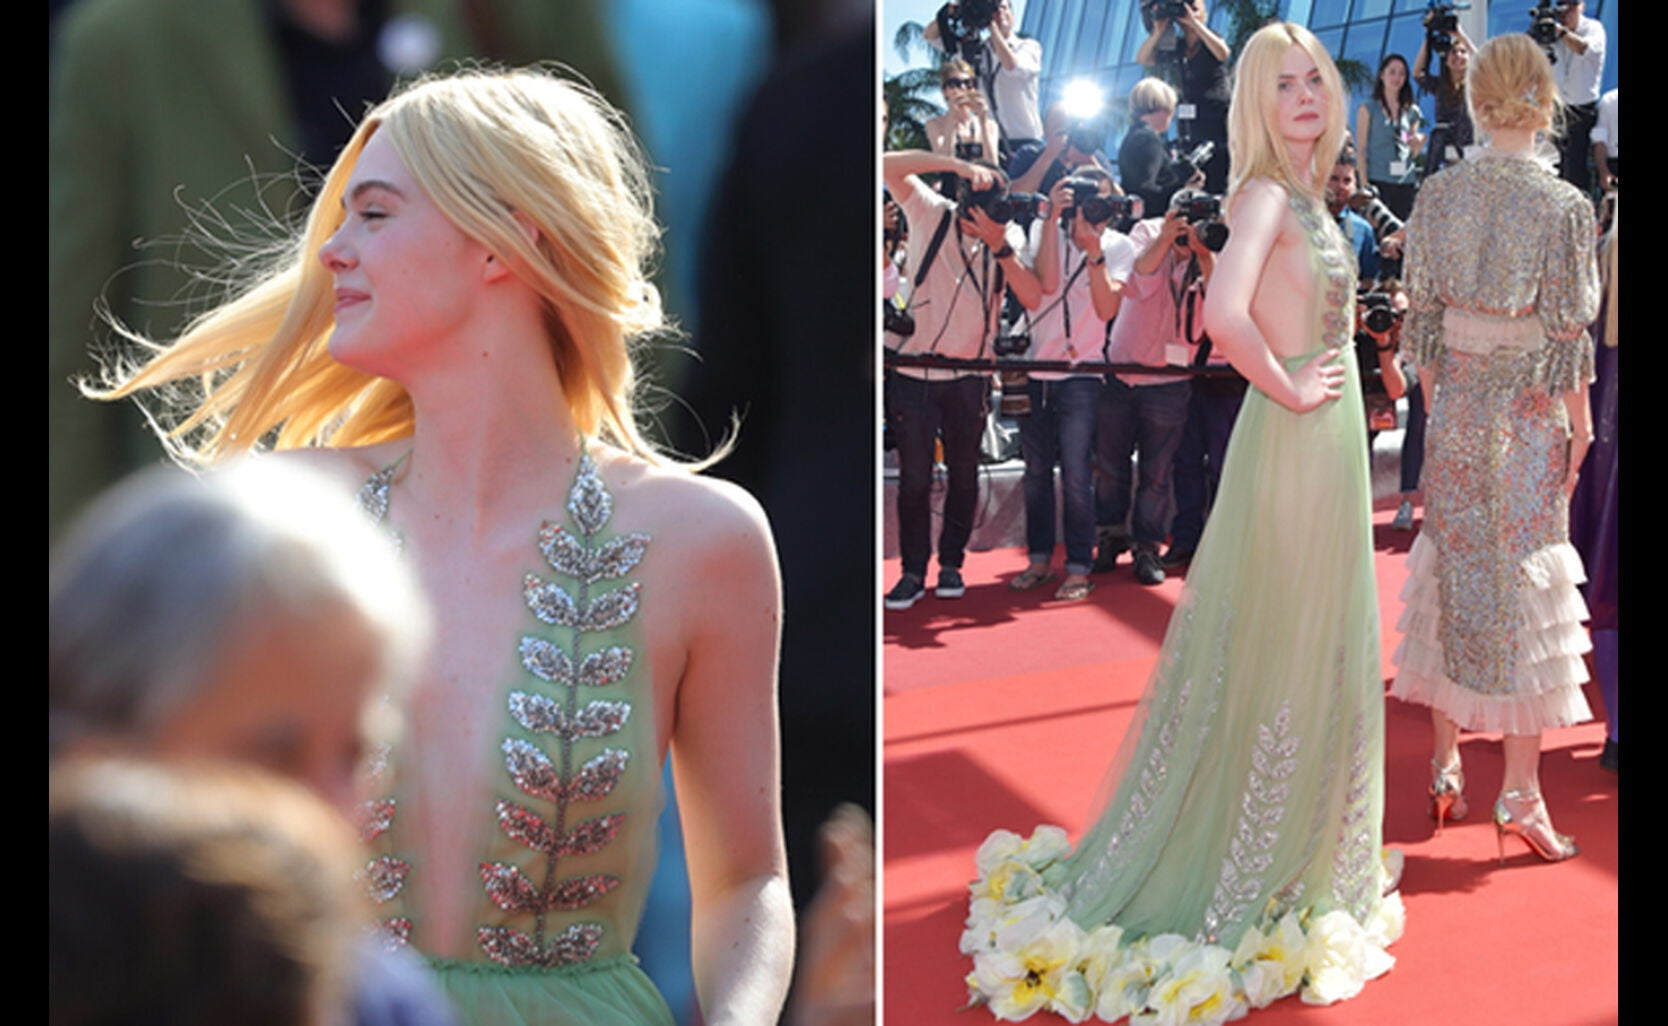 No doubt Elle Fanning ruled this moment.